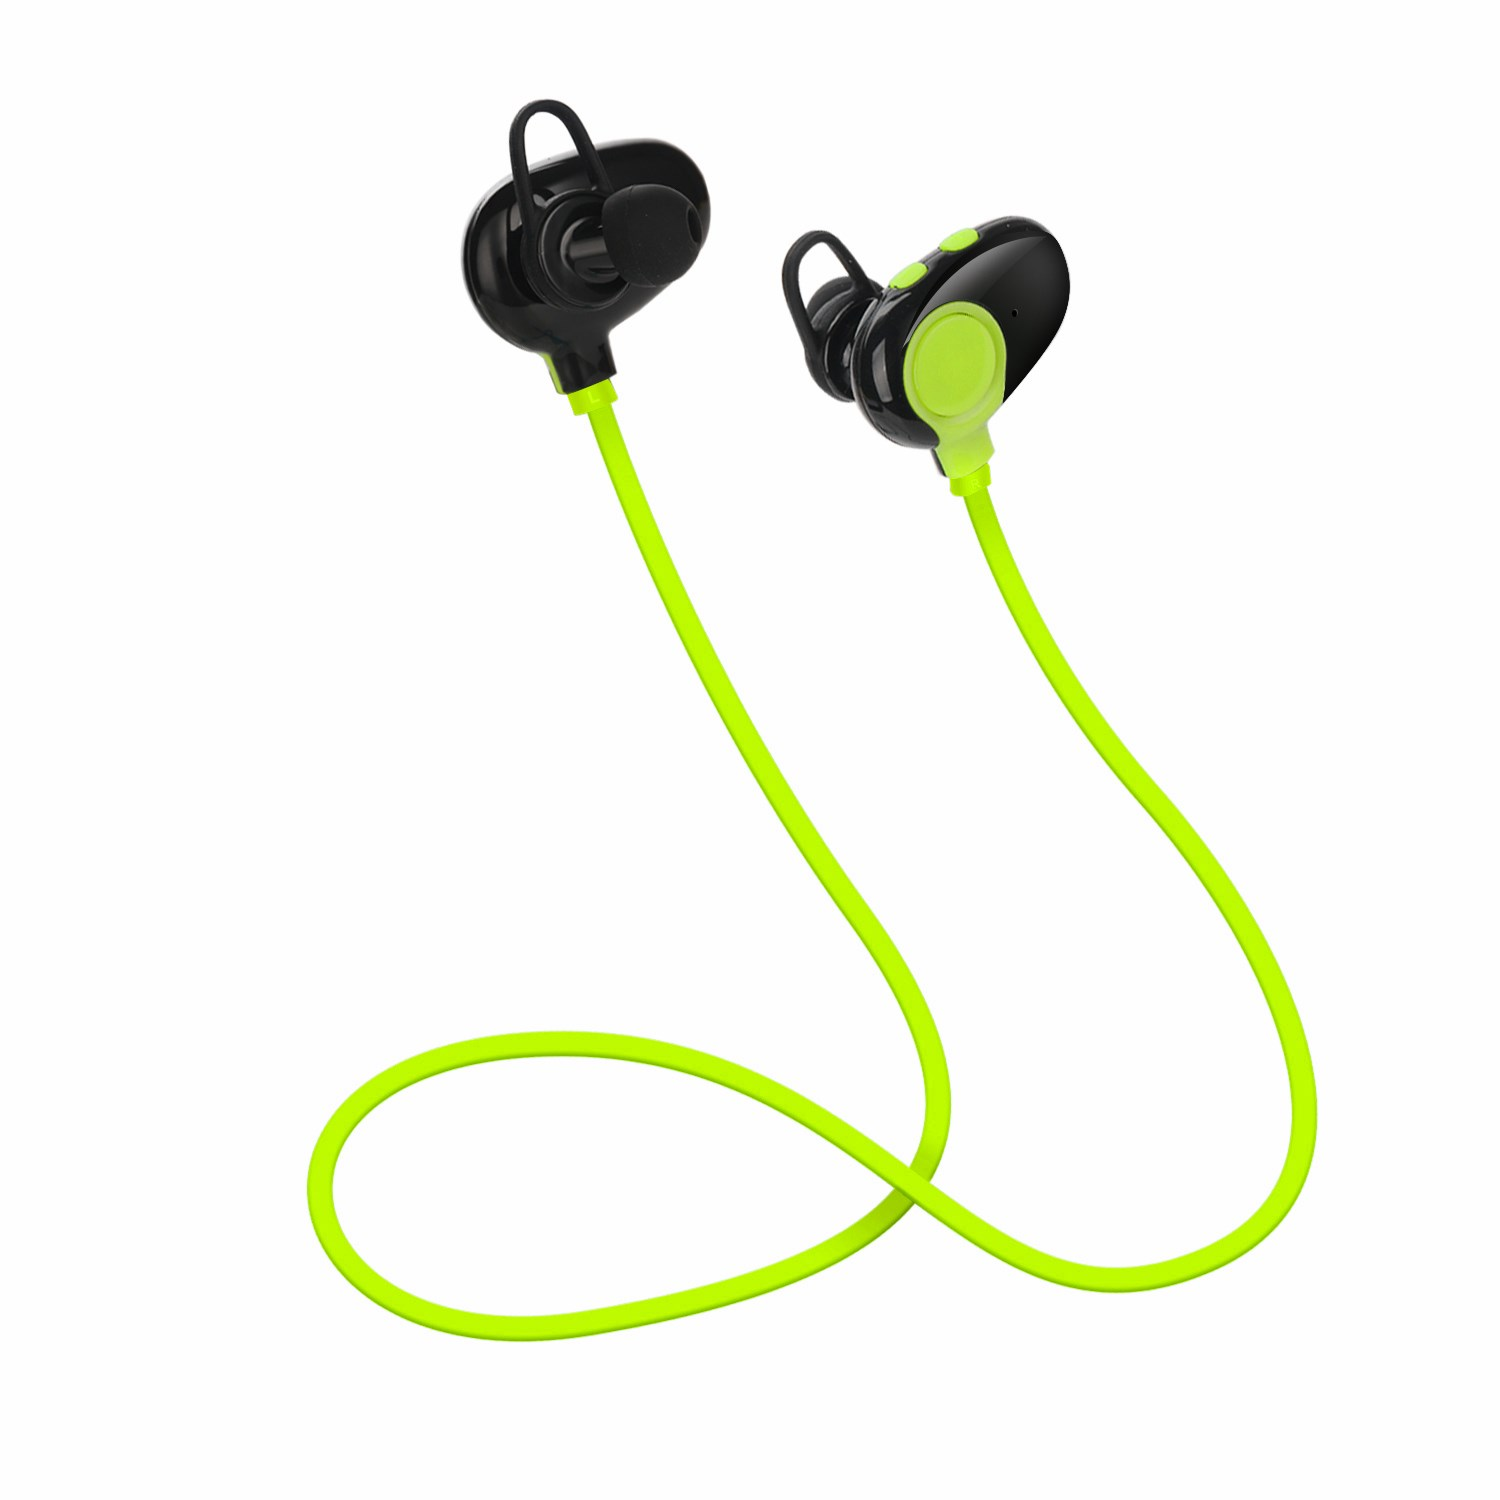 New Stylish Wireless Earphone Sport Headset Blueooth Earphones With Mic Phones Sweatproof Earbuds For Samsung For LG 4 Colors new dacom carkit mini bluetooth headset wireless earphone mic with usb car charger for iphone airpods android huawei smartphone